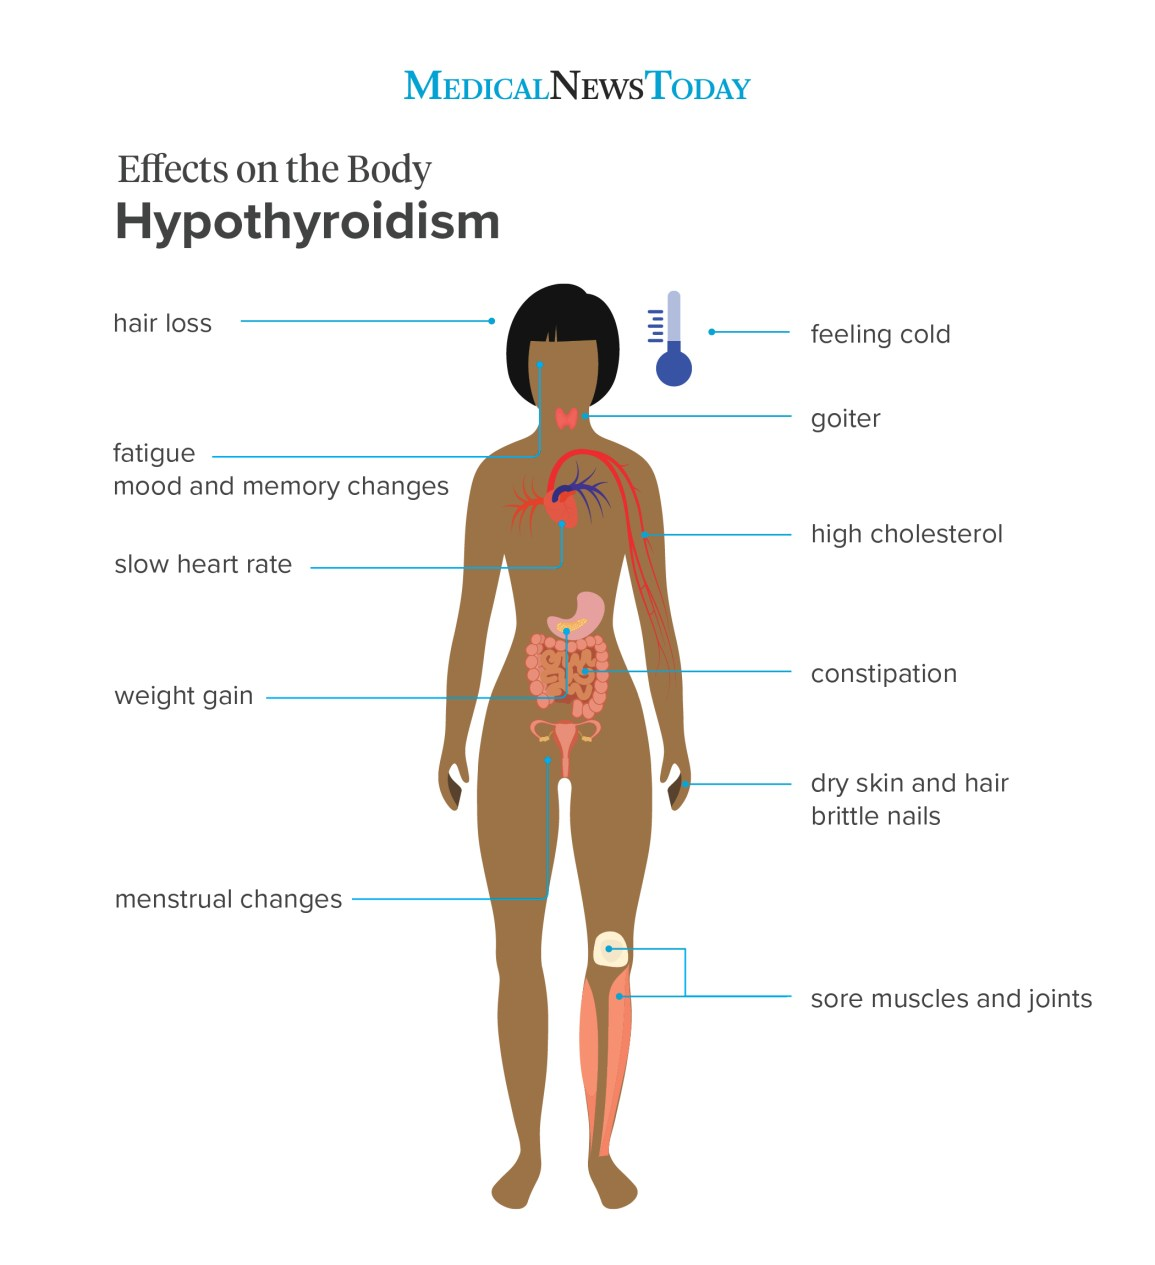 Infographic showing the effects of hypothyroidism on the body.